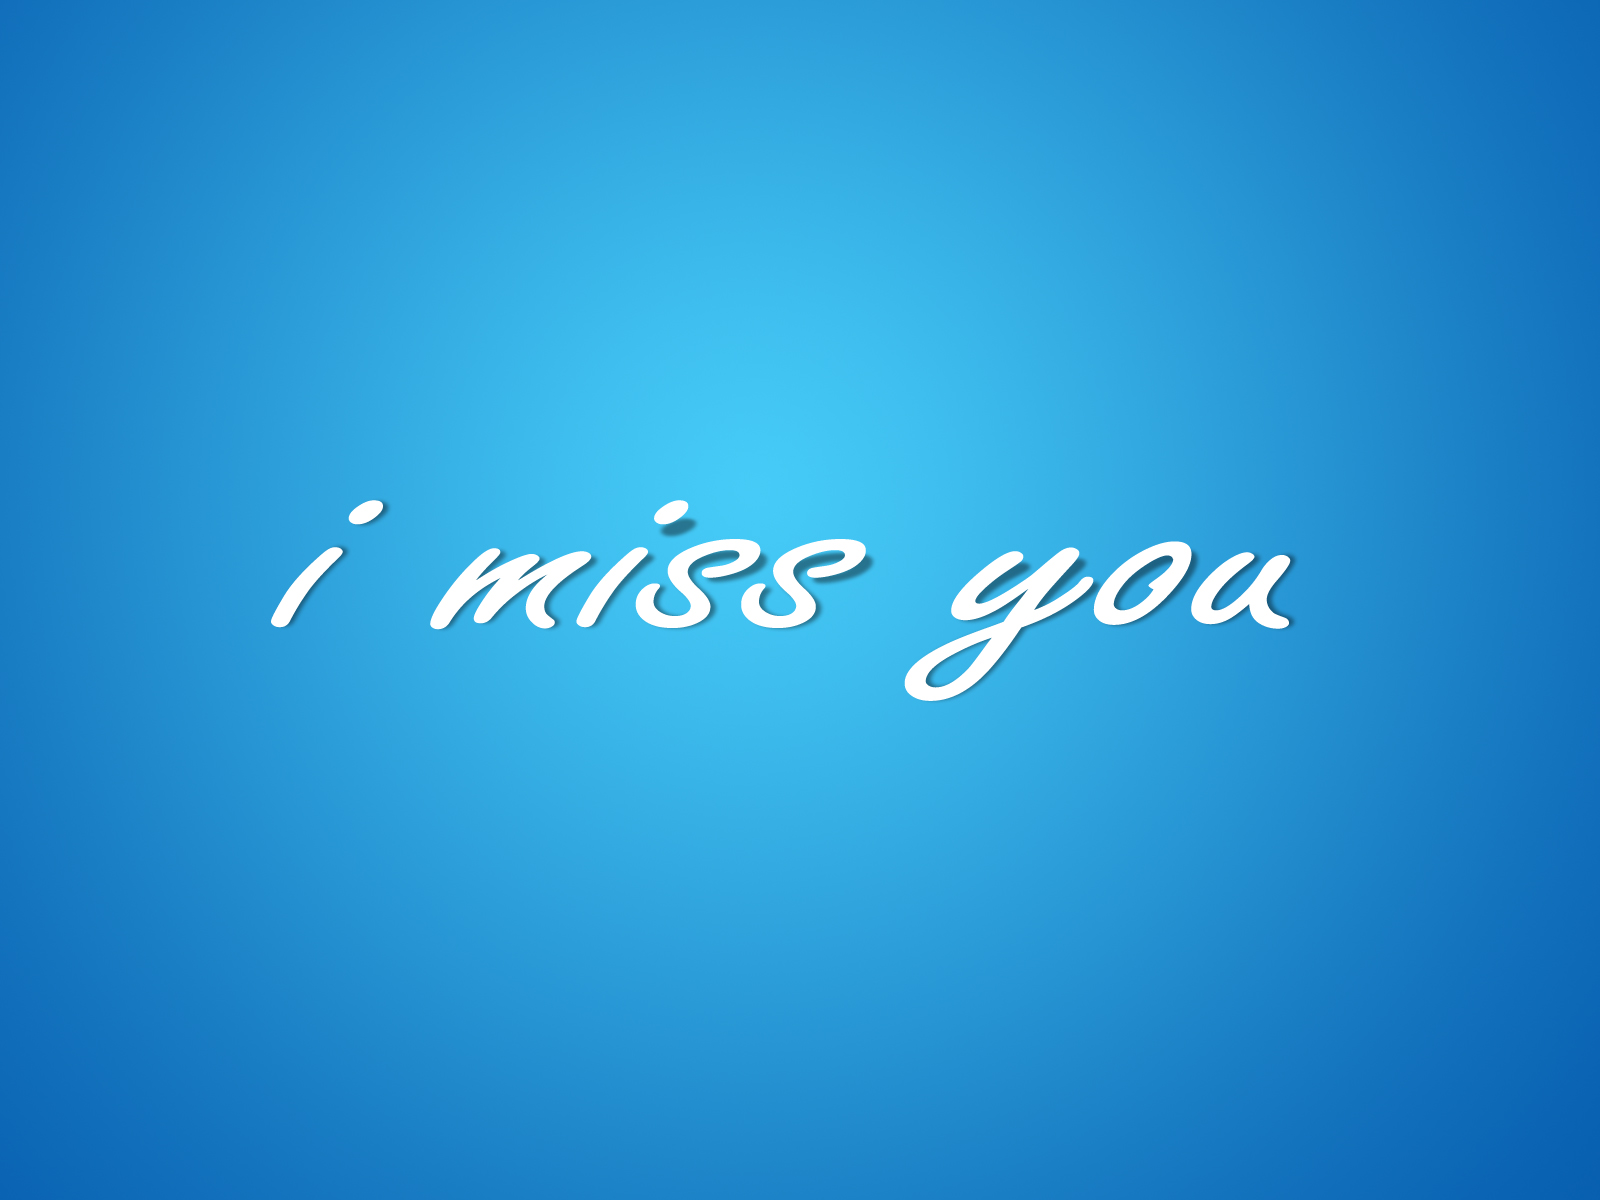 http://4.bp.blogspot.com/-FYJOsksDVEQ/T-6uPu6yCdI/AAAAAAAAB40/7Cwrc64V49E/s1600/I_Miss_You_Wallpaper_Blue_www.Vvallpaper.Net.jpg